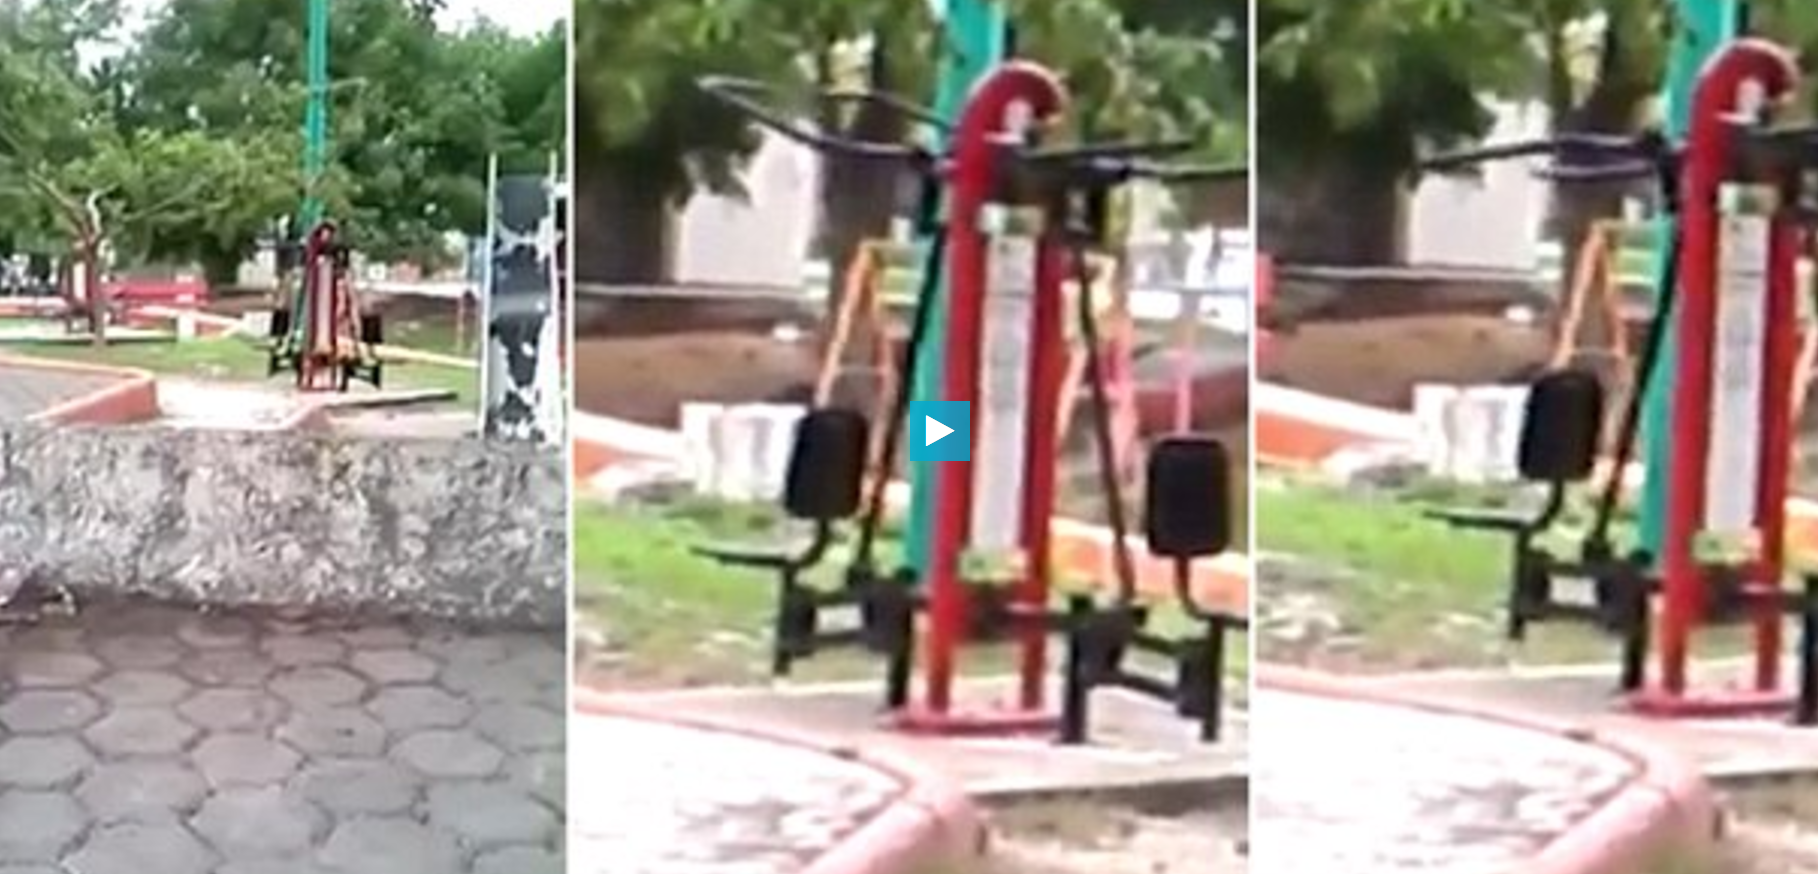 Gym at a park in Cancun that may have a ghost